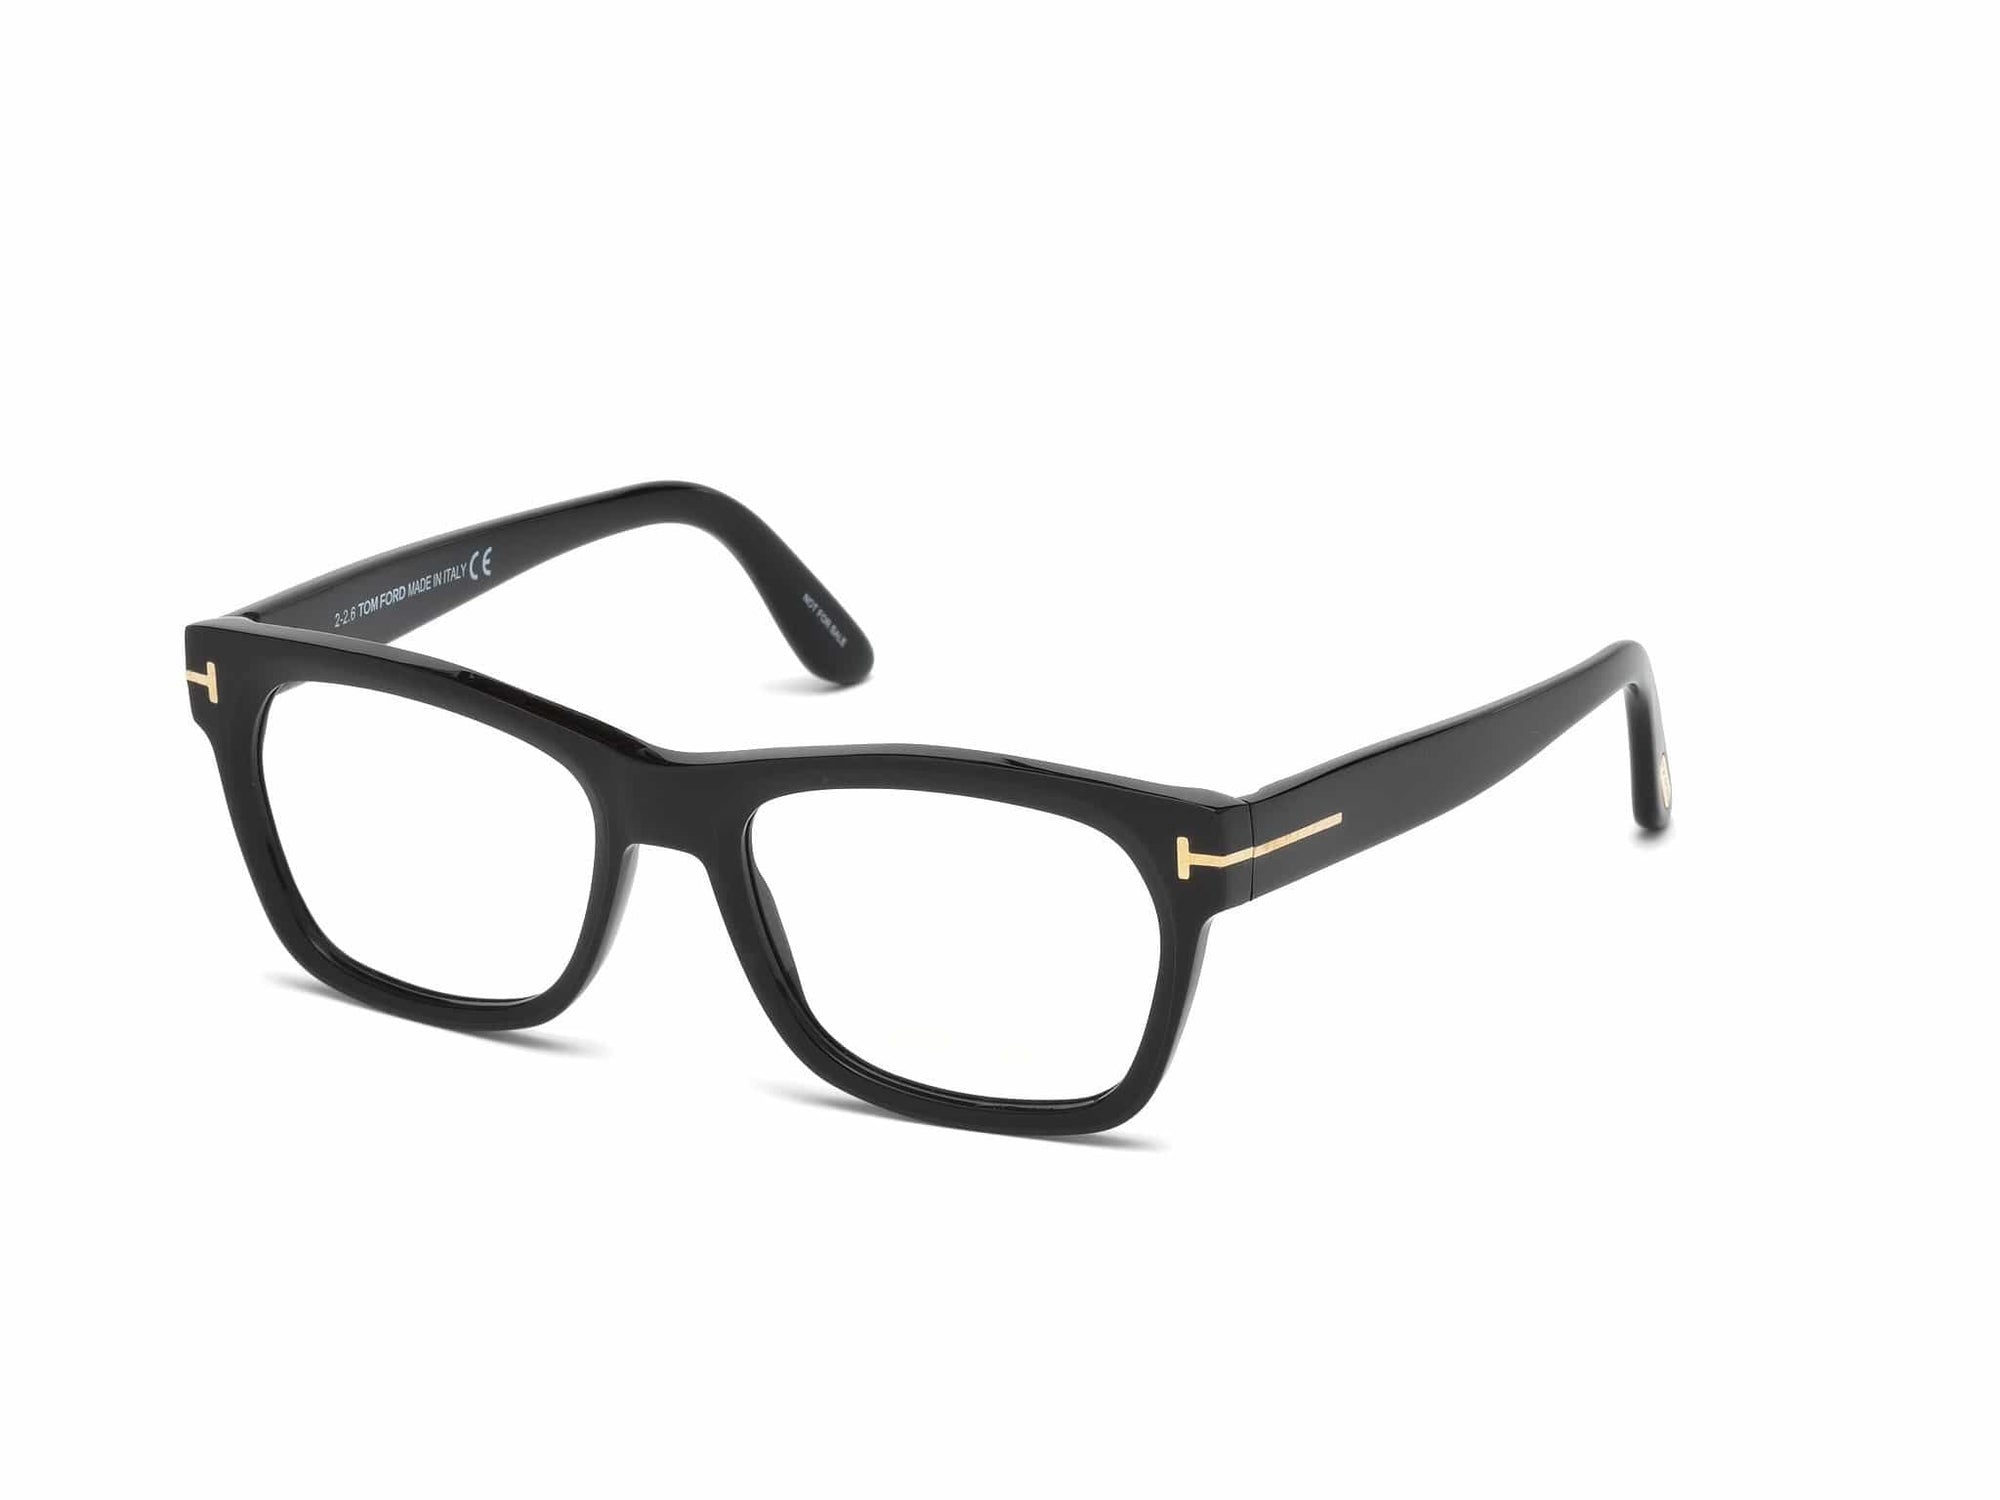 Tom Ford FT5468-F Geometric Eyeglasses